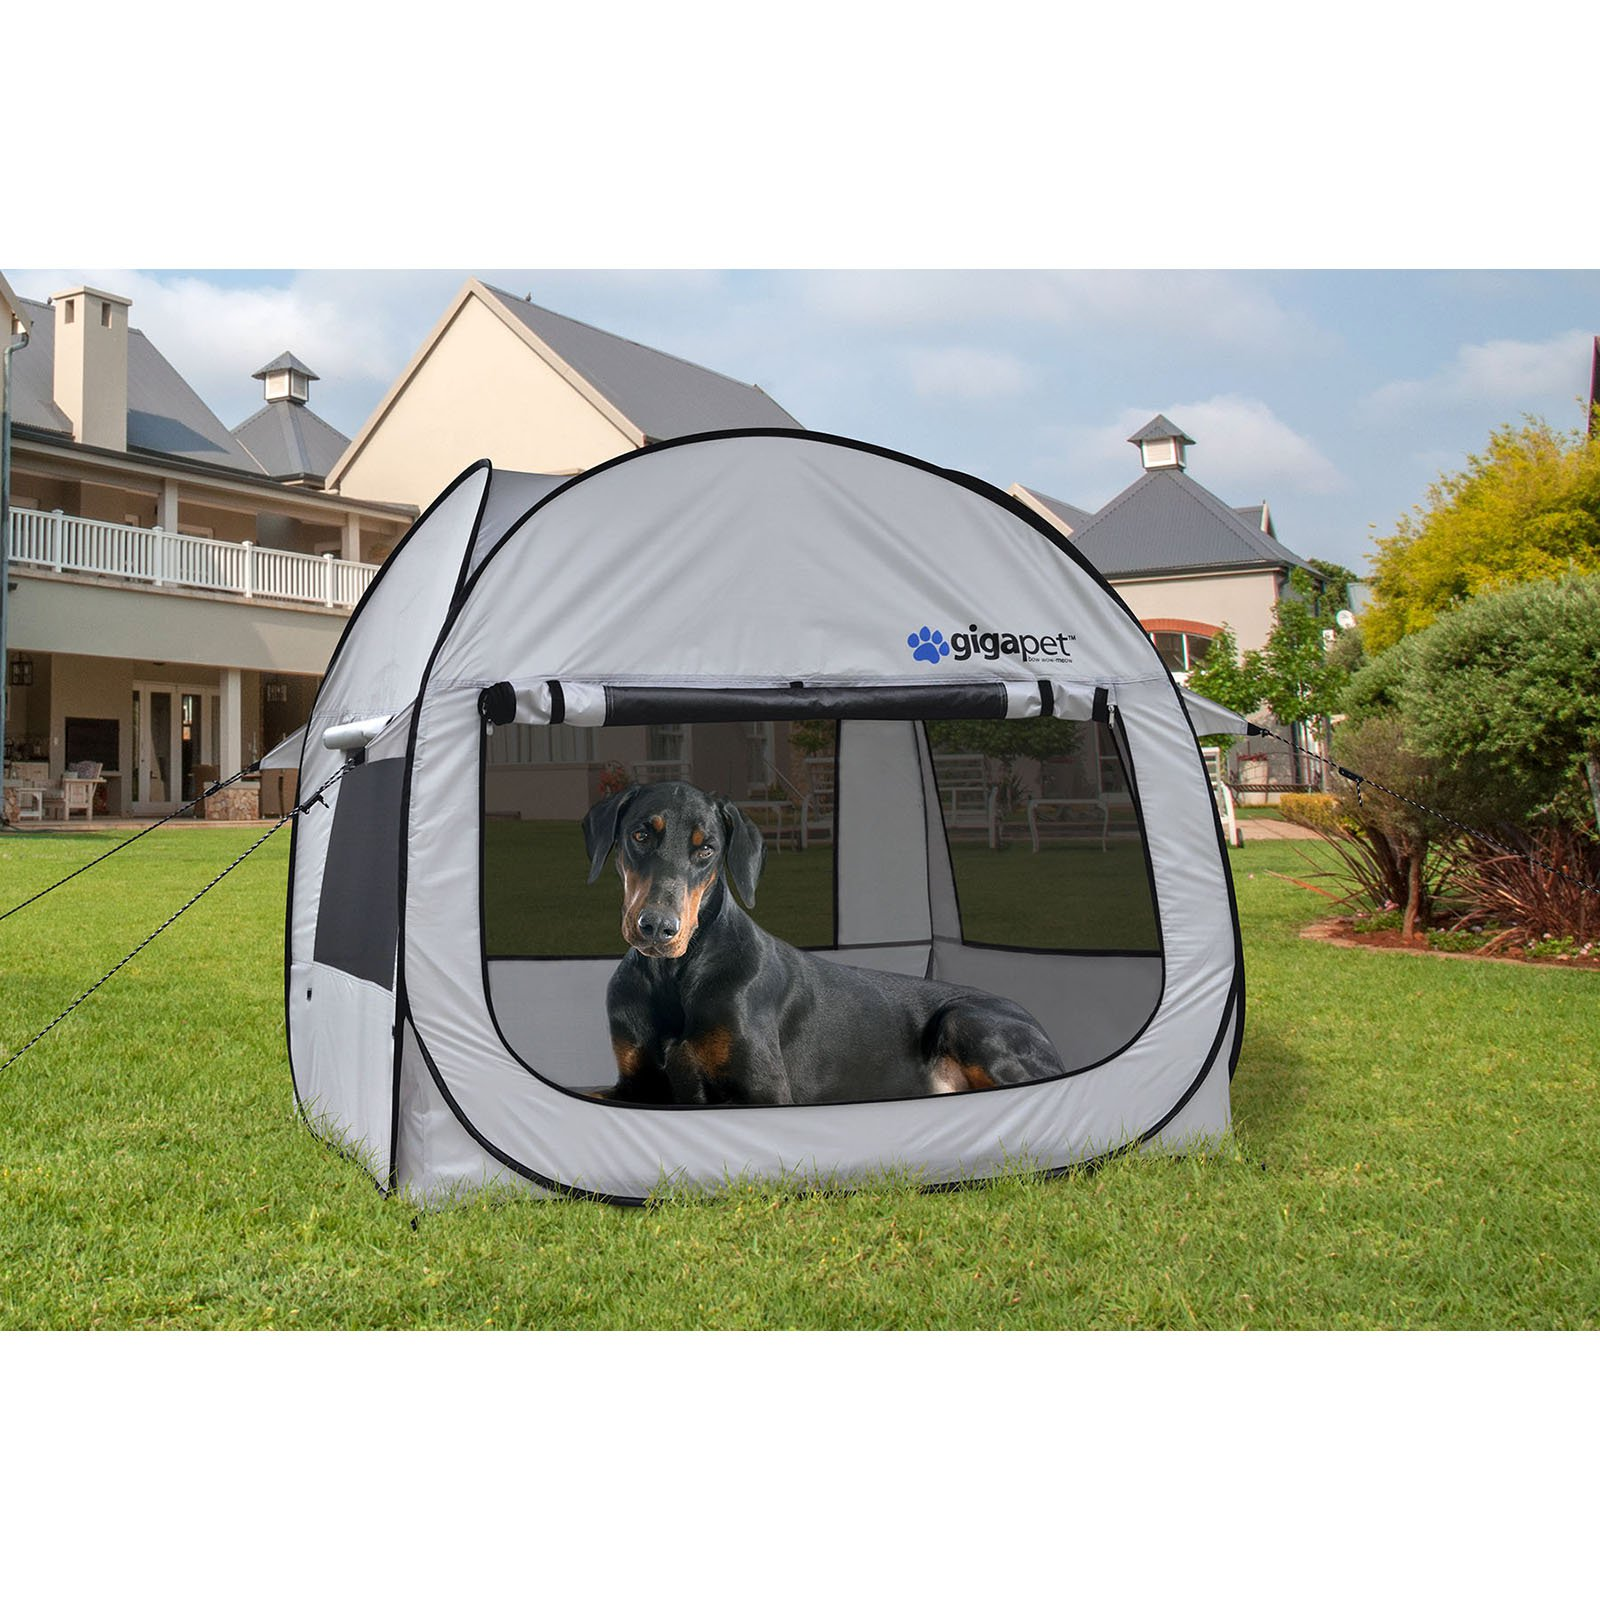 Pop-Up Critter Cabin I Pet Tent  sc 1 st  Walmart & Pop-Up Critter Cabin I Pet Tent - Walmart.com